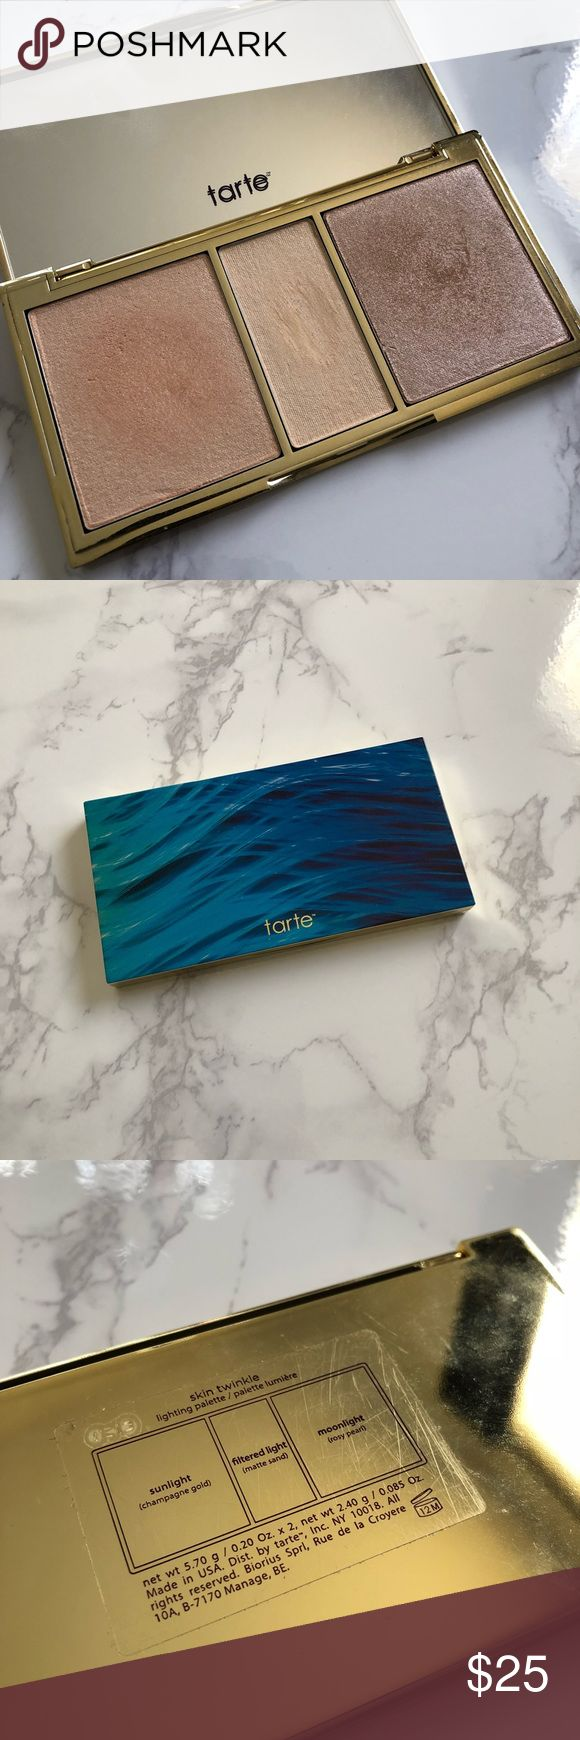 Tarte Skin Twinkle Highlighter Palette Tarte Rainforest of the Sea Skin Twinkle Volume 1 Highlighter Palette. After going through some life changes, I've decided to declutter my makeup and I'm getting rid of quite a few items. This palette is gently used. It is slightly too dark for my super pale skin, but I could make it work depending on the Blush and Bronzer I used. The middle shade is a matte yellow powder to help brighten under the eyes. tarte Makeup Luminizer